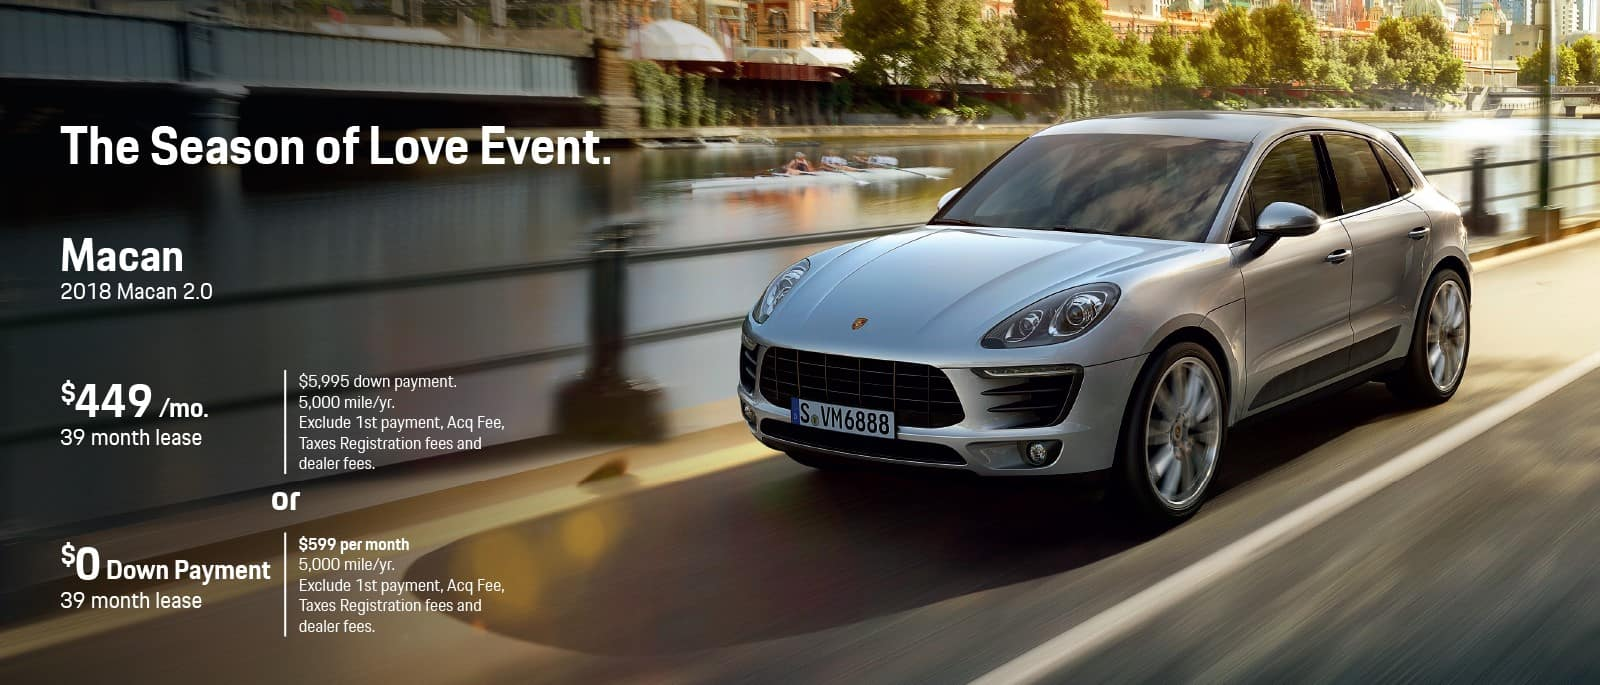 Porsche Macan Season Of Love Sale